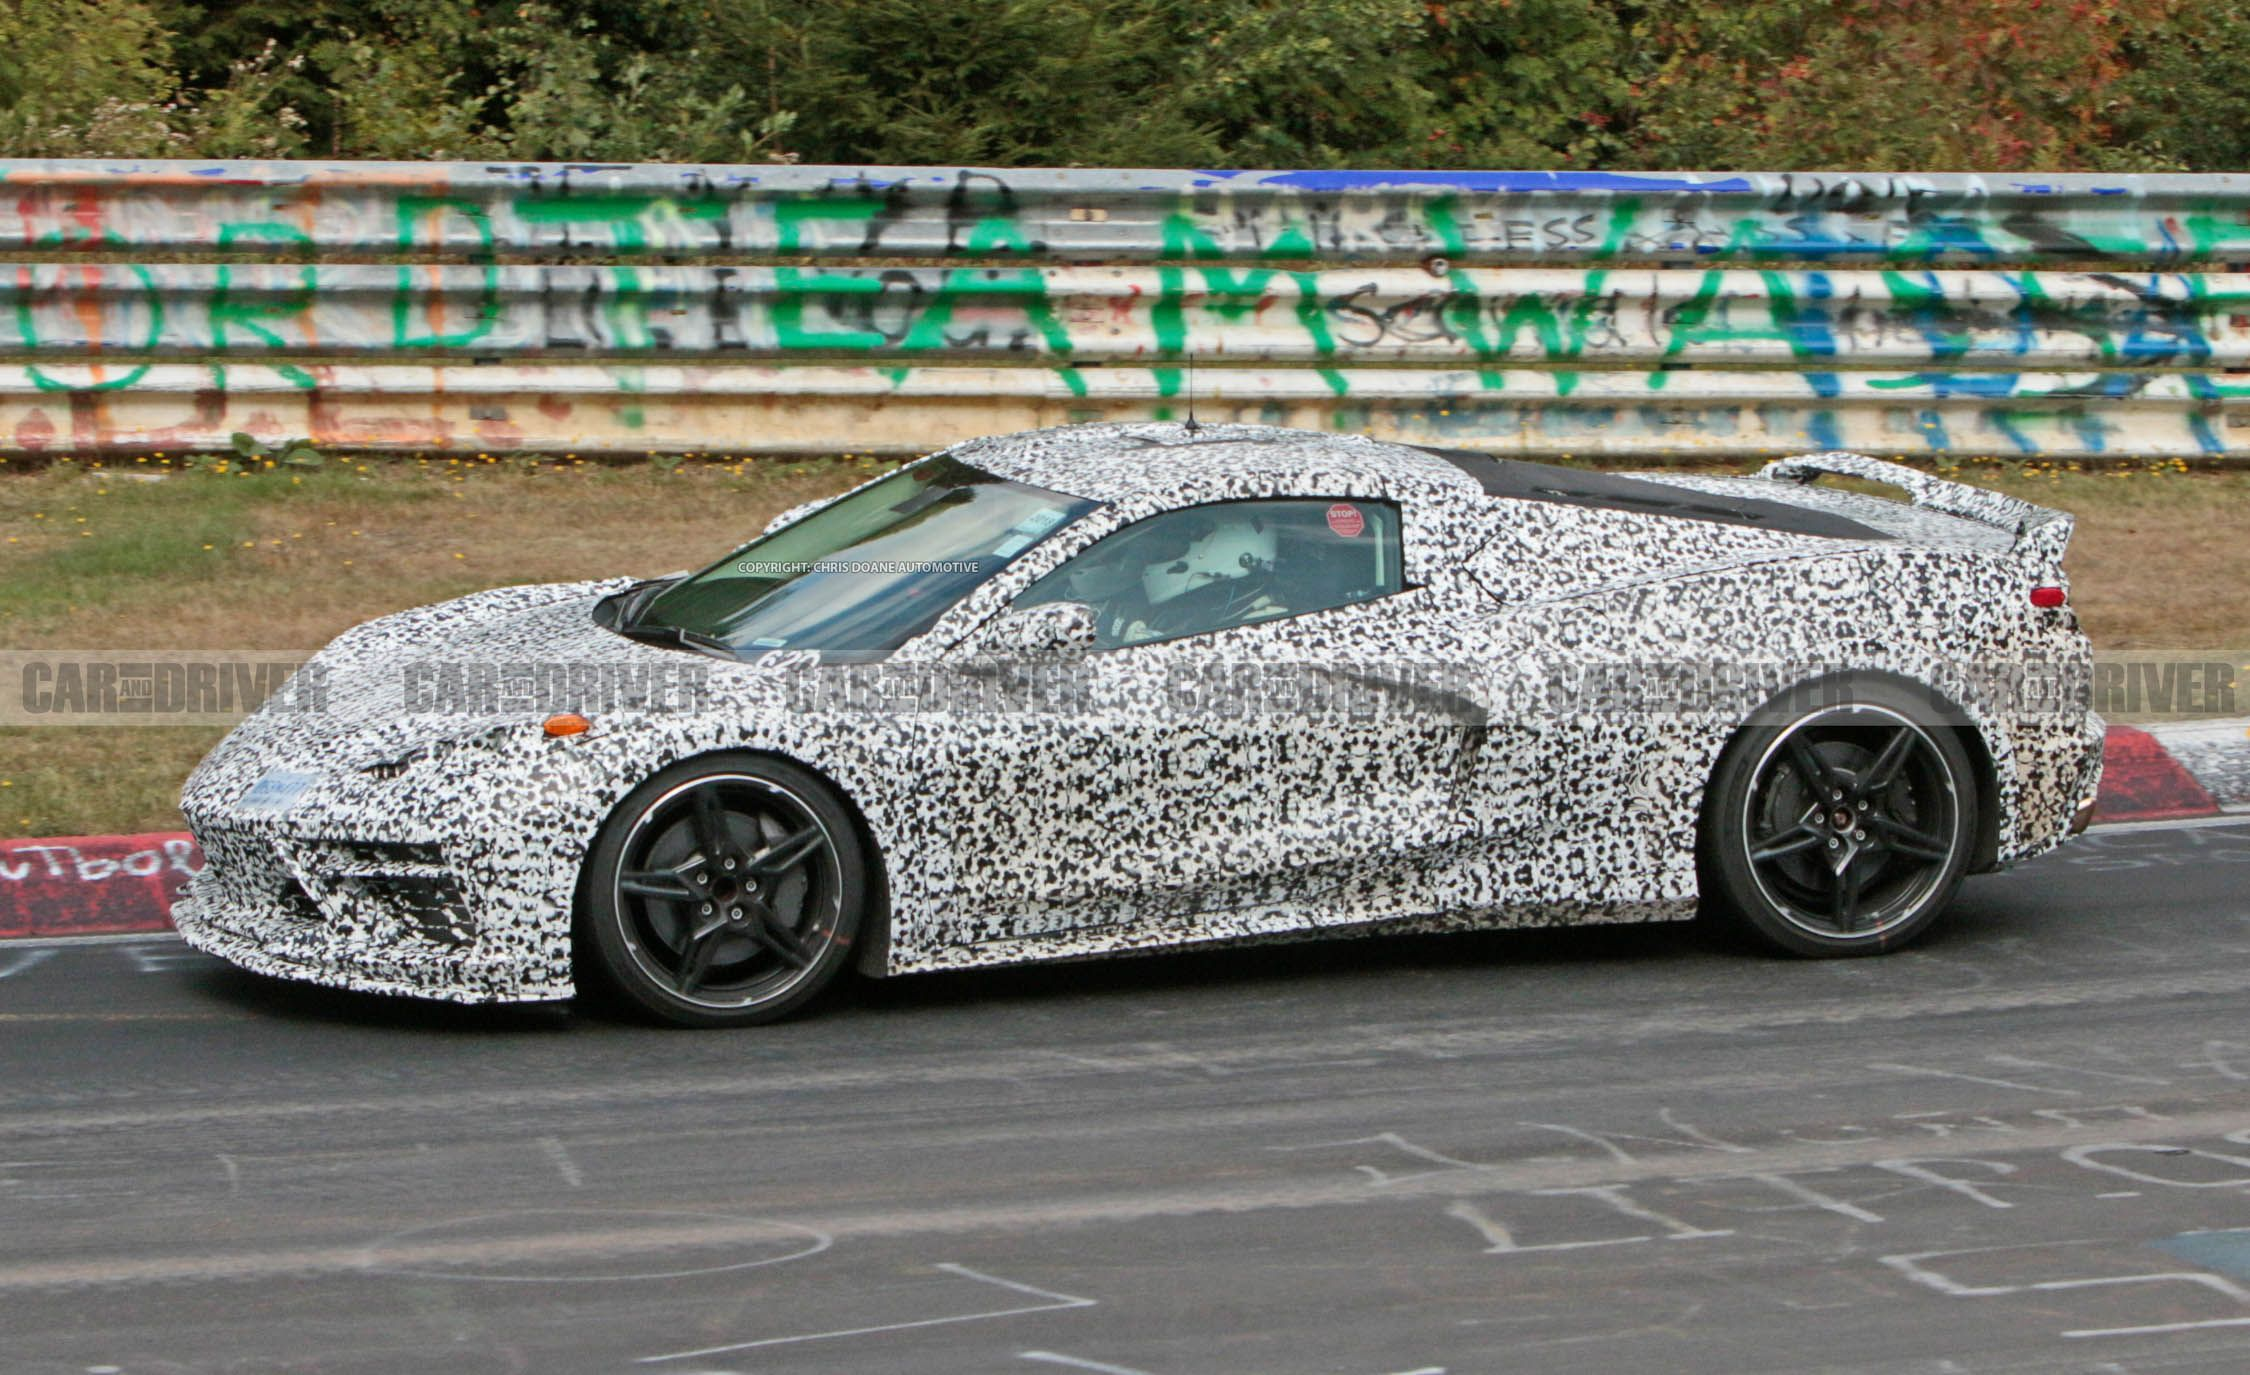 2020 Chevrolet Corvette C8: Fresh Spy Shots Reveal New Details [Video]